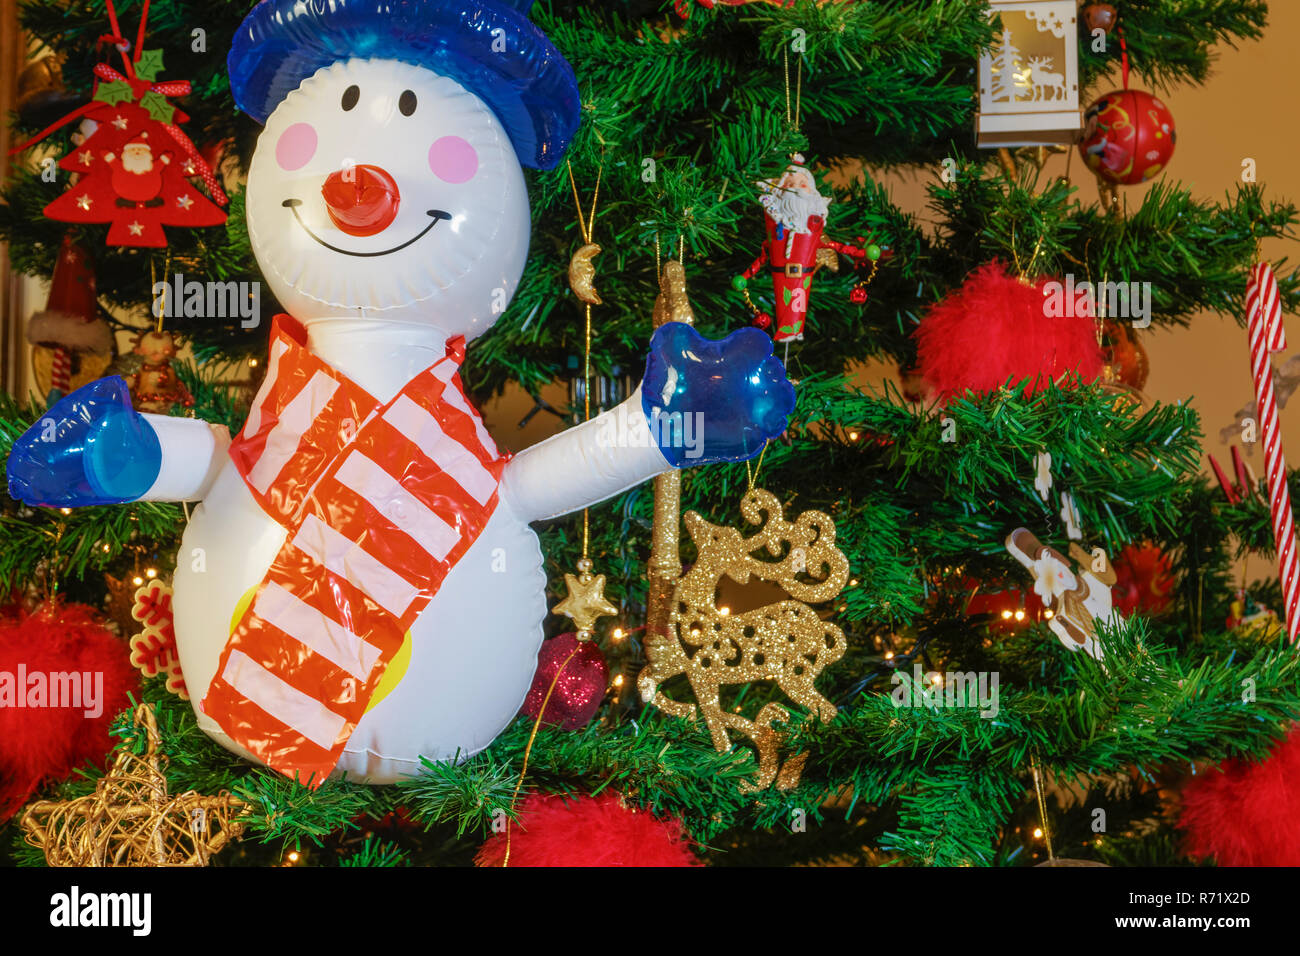 Large Inflatable Snowman On A Christmas Tree Air Blown Seasonal